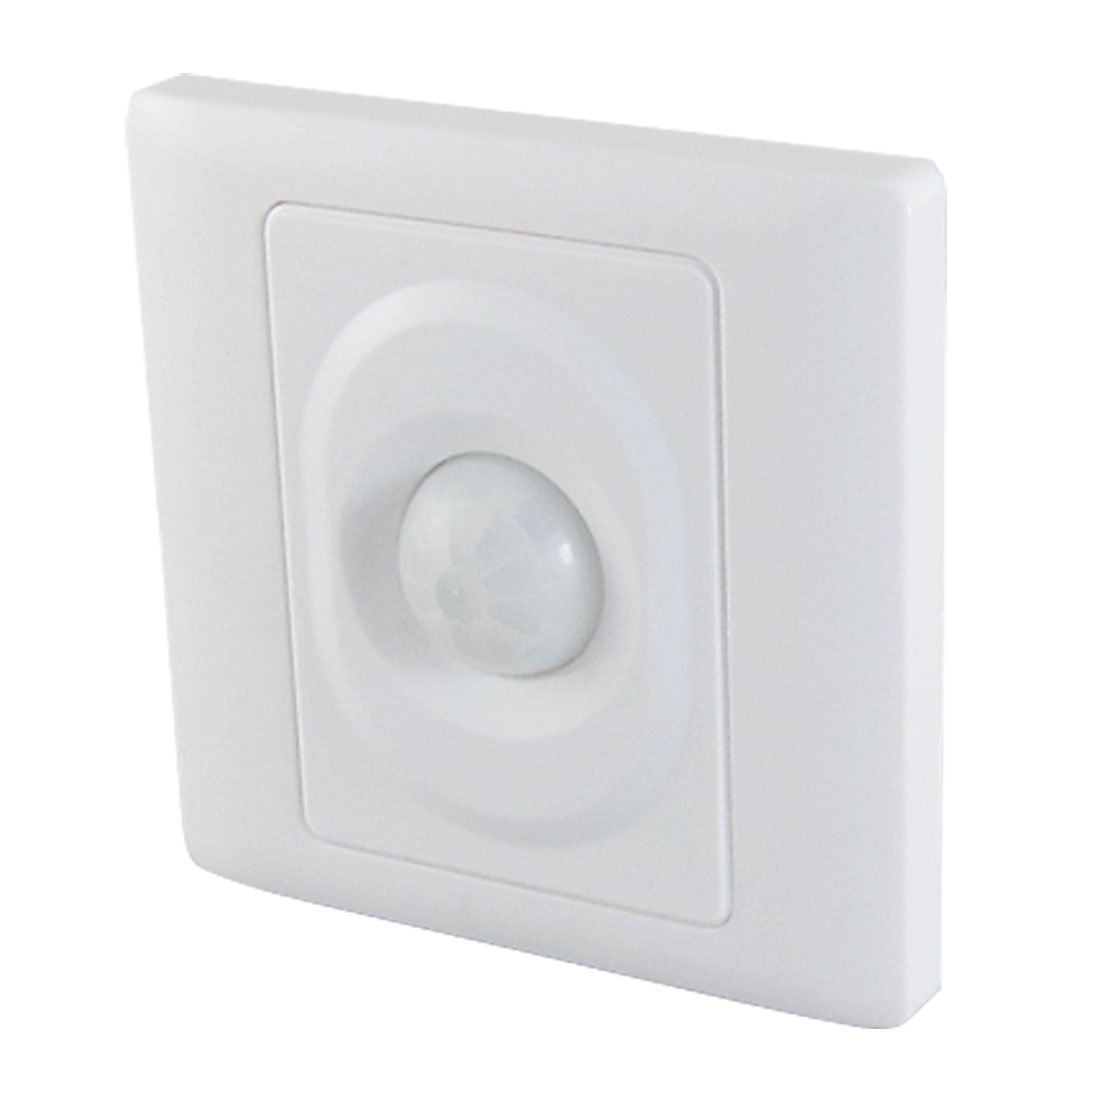 Infrared IR Motion Sensor Automatic Light Lamp Switch AC 220V